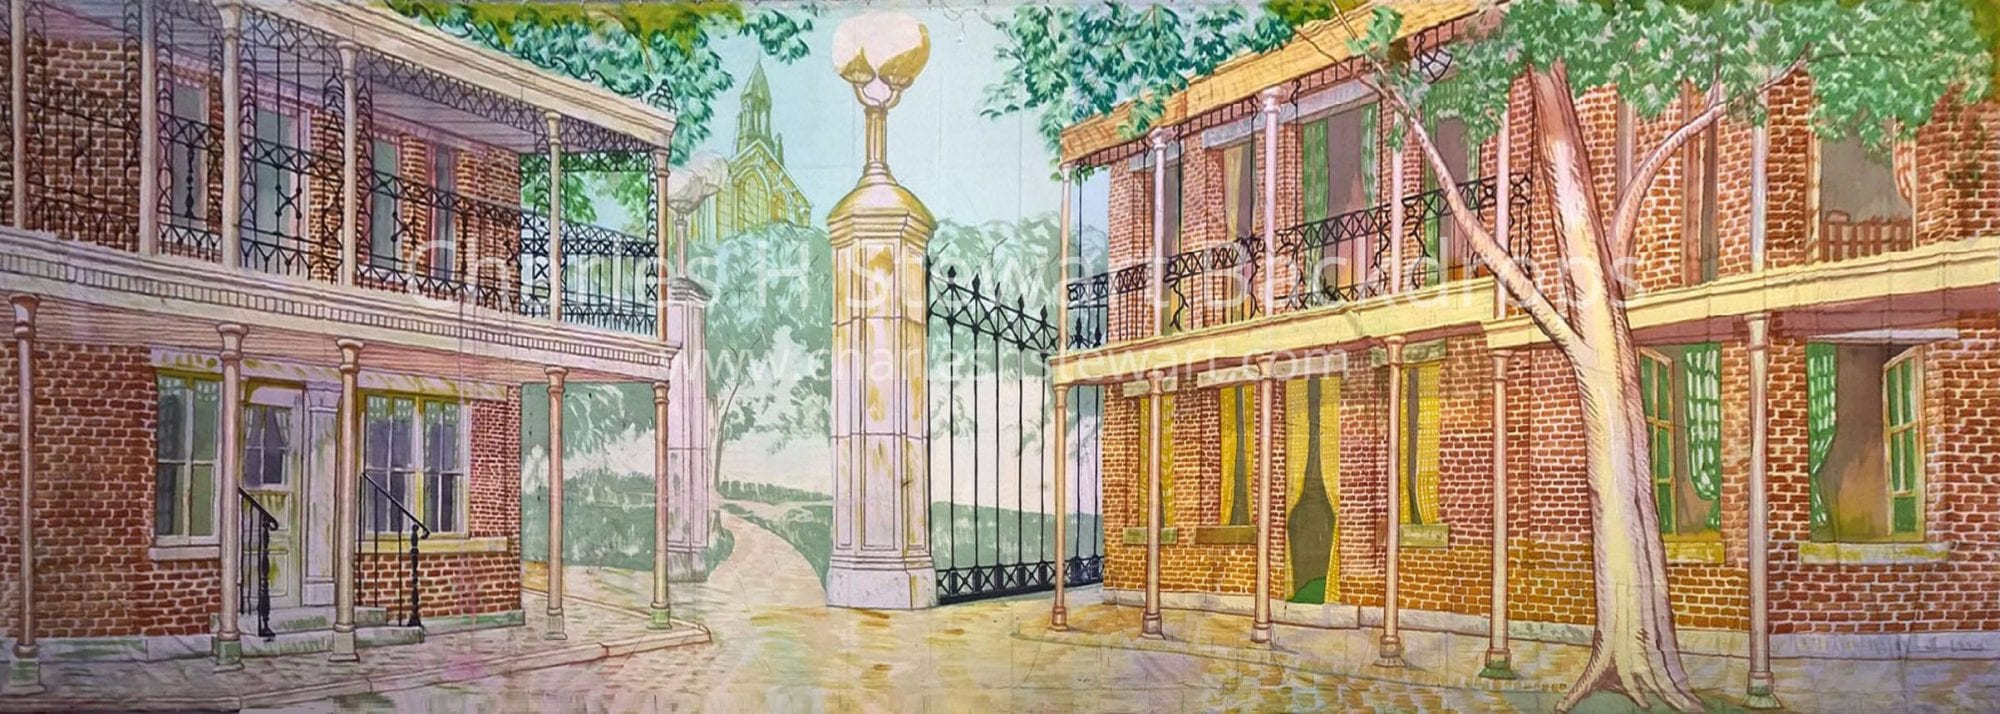 Home Design Quarter Contact Number New Orleans Street Backdrop Backdrops By Charles H Stewart